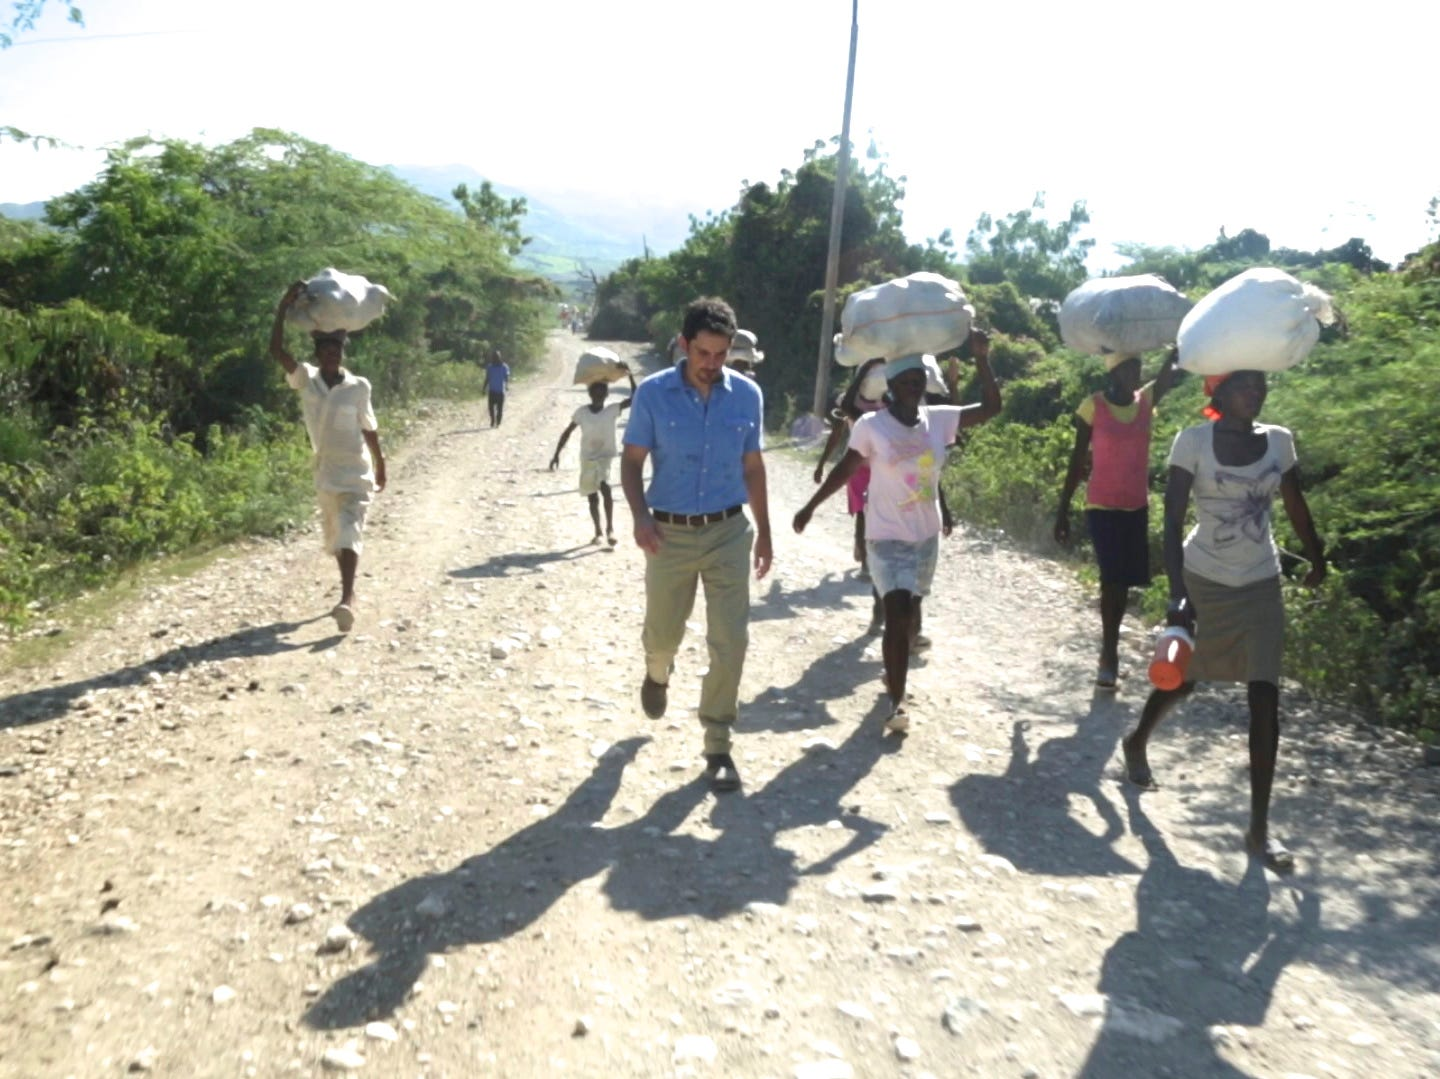 Brad Paisley in September 2013 in Haiti, where he helped bring water to destitute residents there